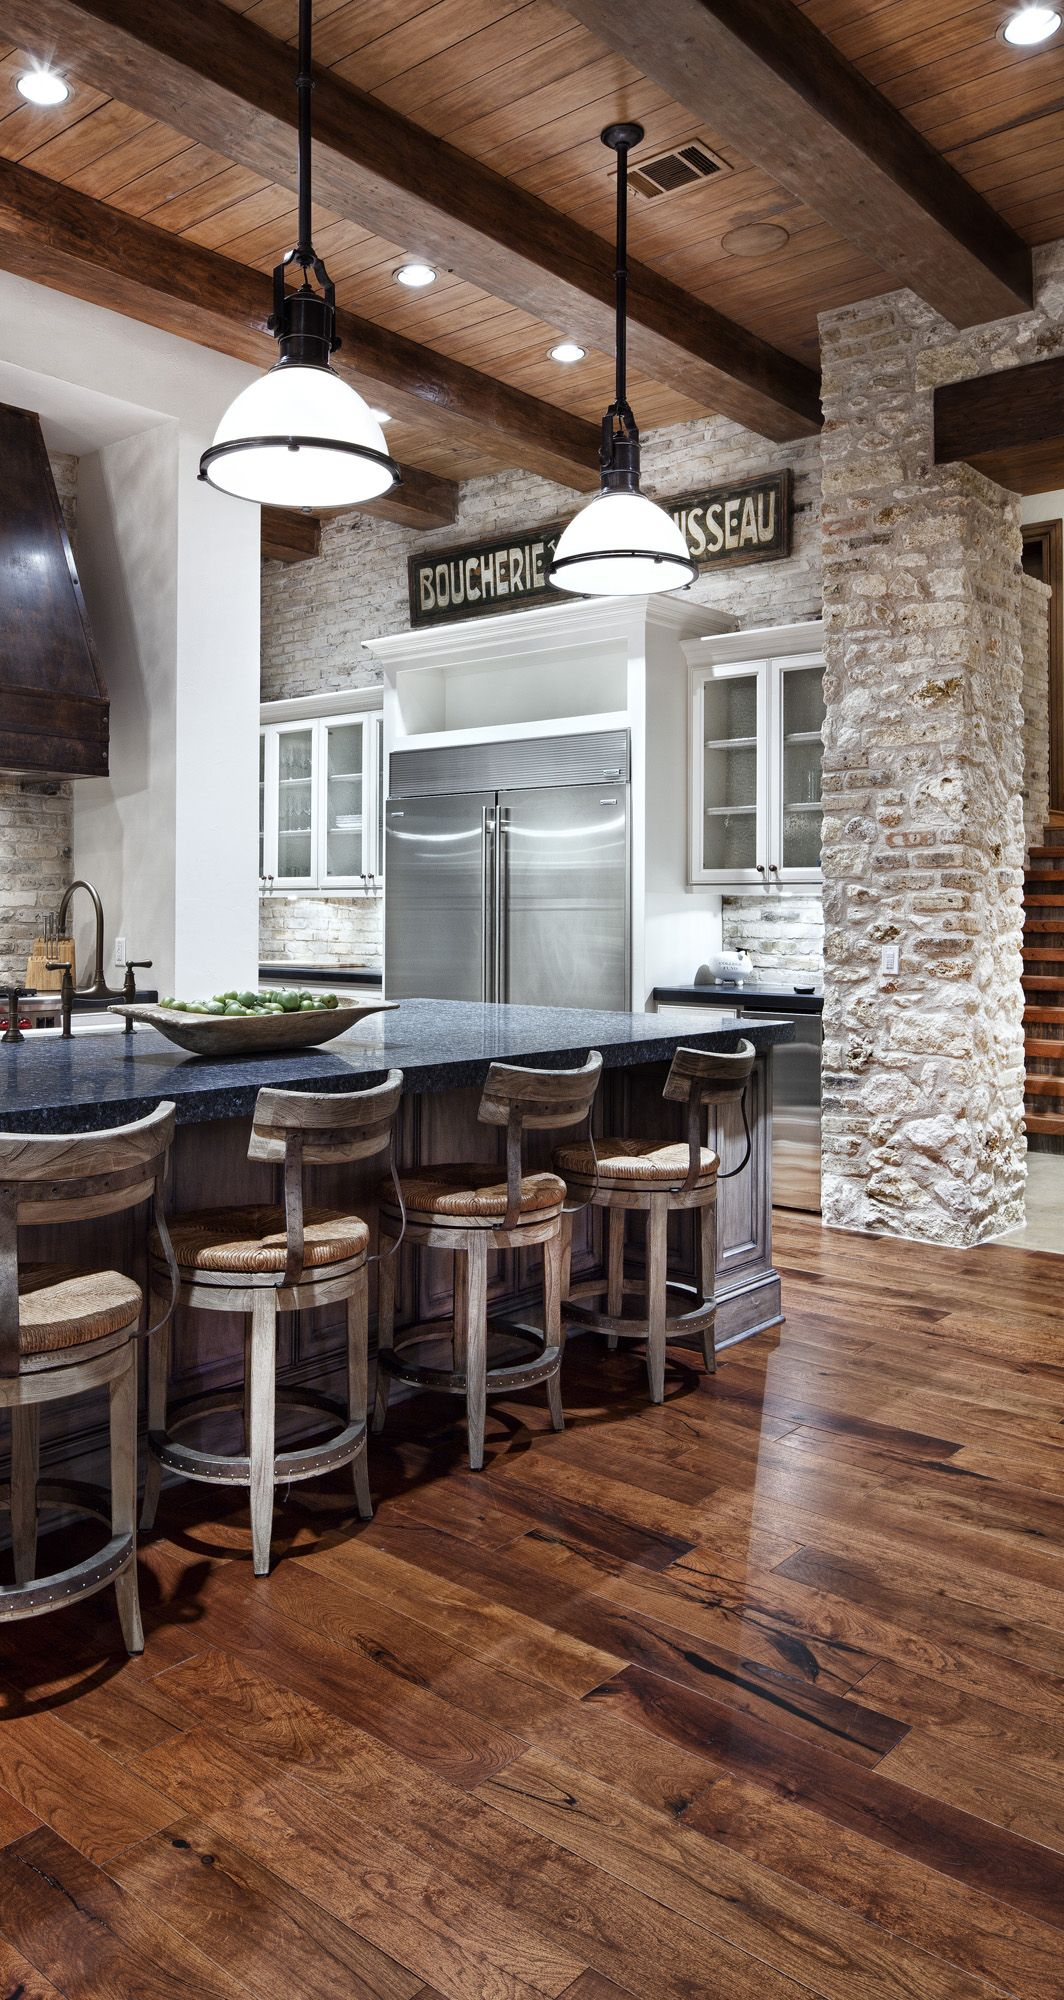 43 Kitchen Design Ideas With Stone Walls For My Future House